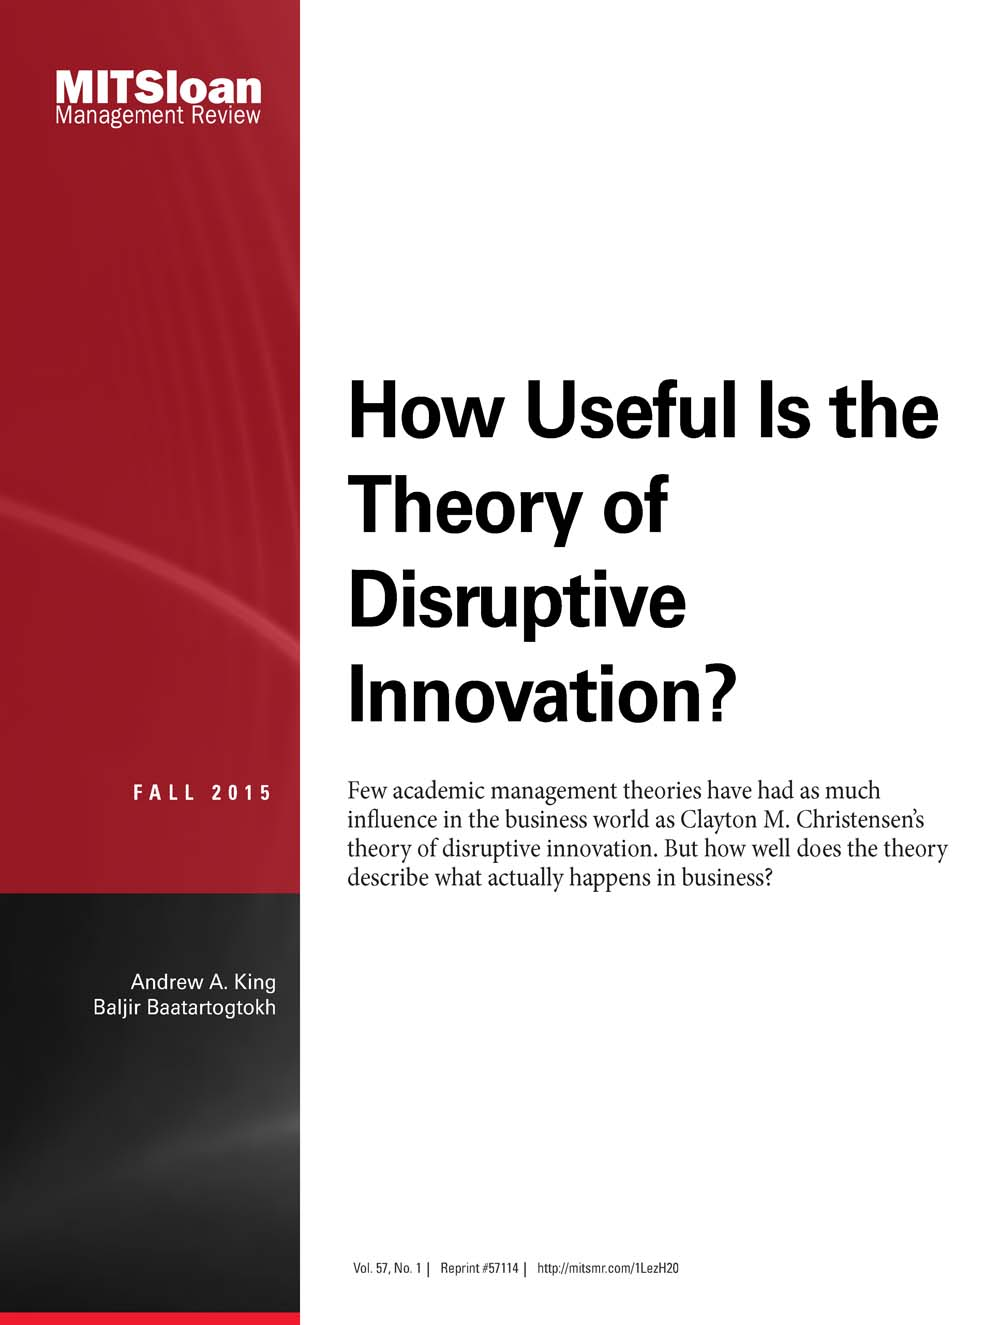 theories of innovation Abstract: this review aims to provide an overview of the ideas, theories and research relating to the diffusion of innovations it seeks to place the relationship between librarians and the internet and related networked information within the context of diffusion research it includes a brief background to diffusion research and a.